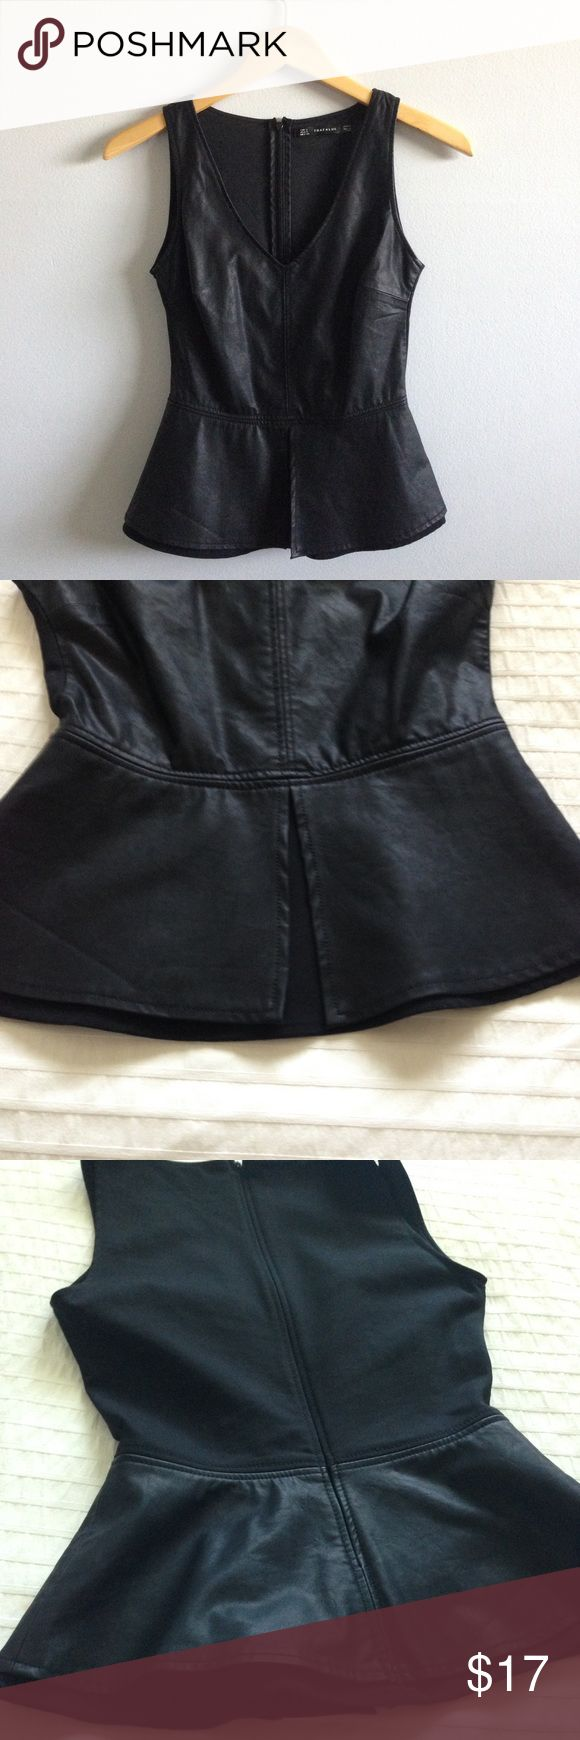 Zara Trafaluc Faux Leather Peplum Top Size S but could probably fit an XS as well. Measurements listed in the photos above ☝🏼very fitted, Zips in the back Zara Tops